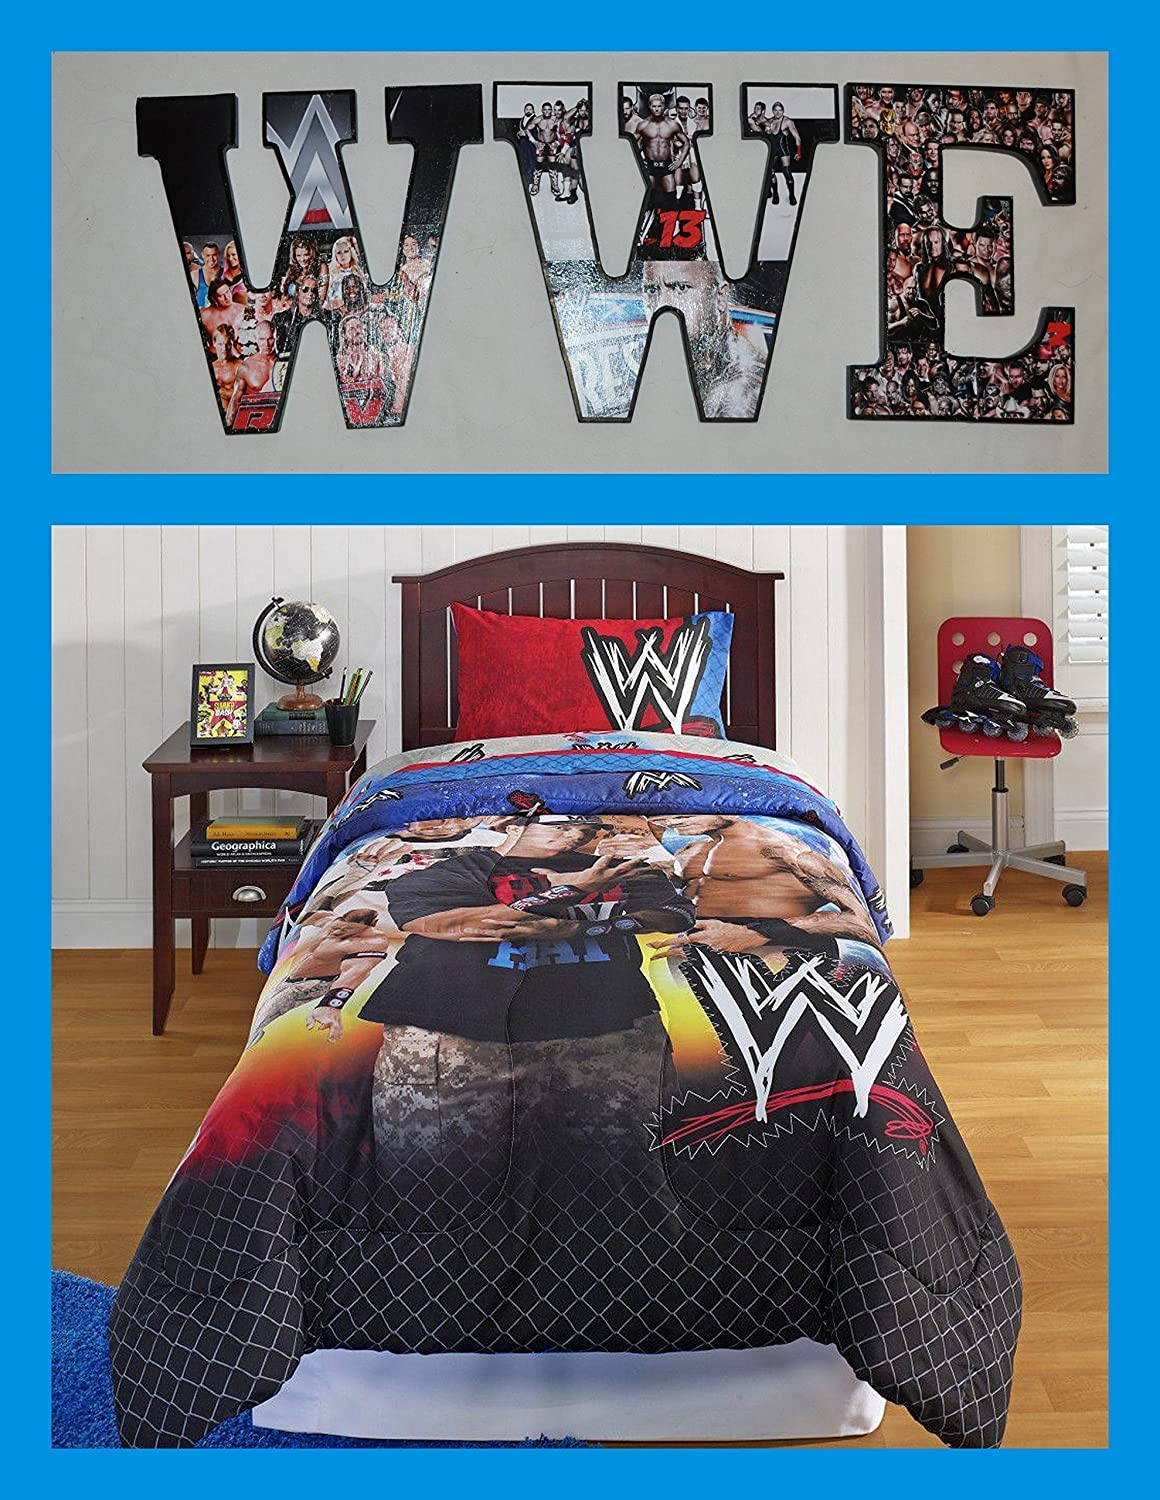 Amazon.com: WWE Inspired Wooden Wall Letters Decor: Handmade